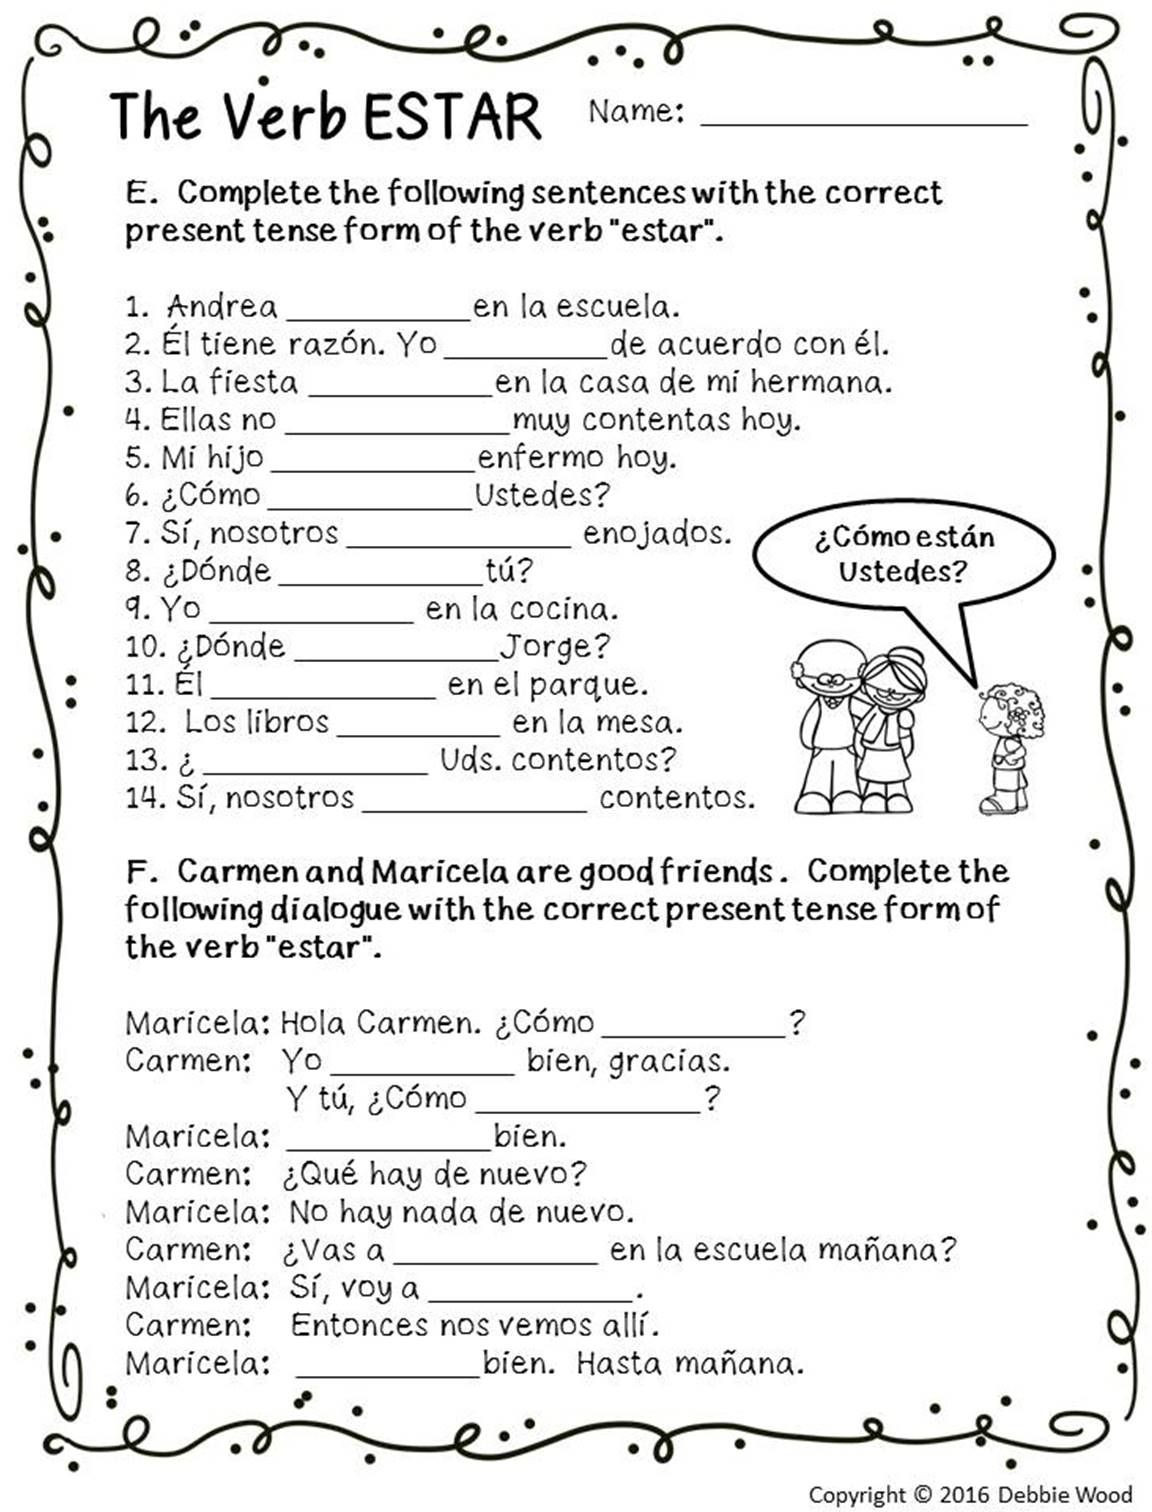 20 Spanish Reflexive Verbs Worksheet Printable